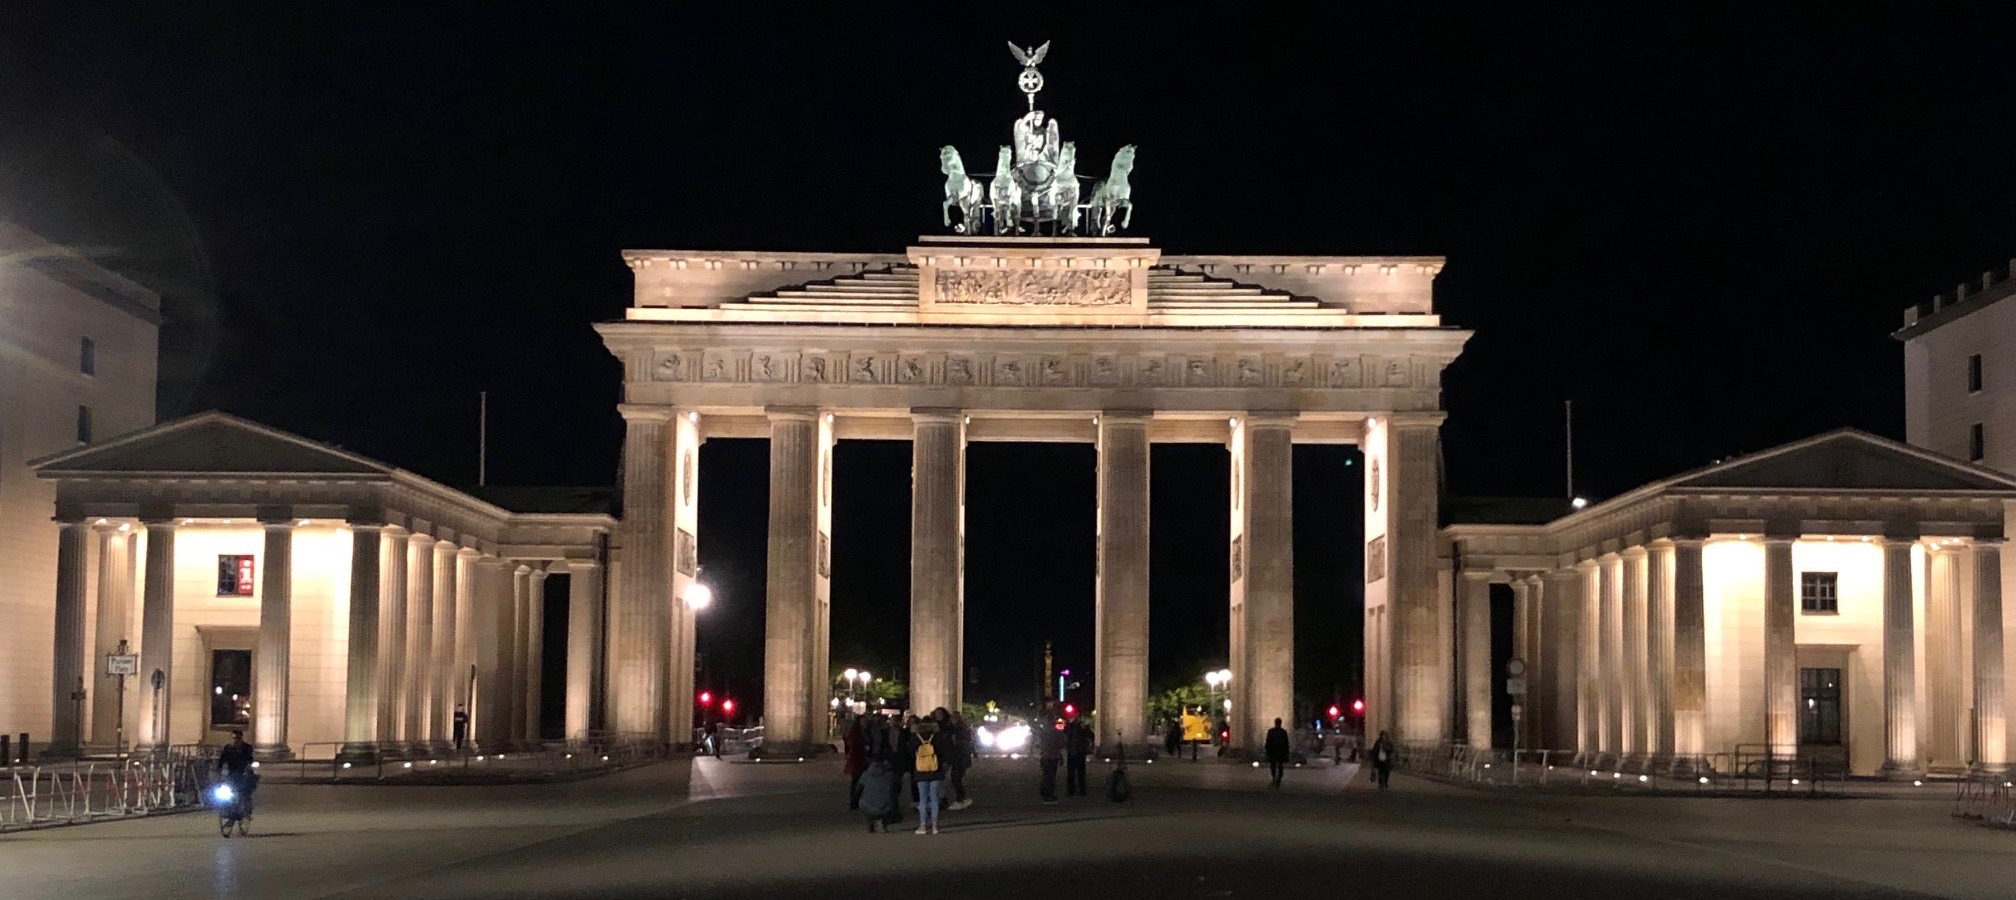 visit berlin in 1 week